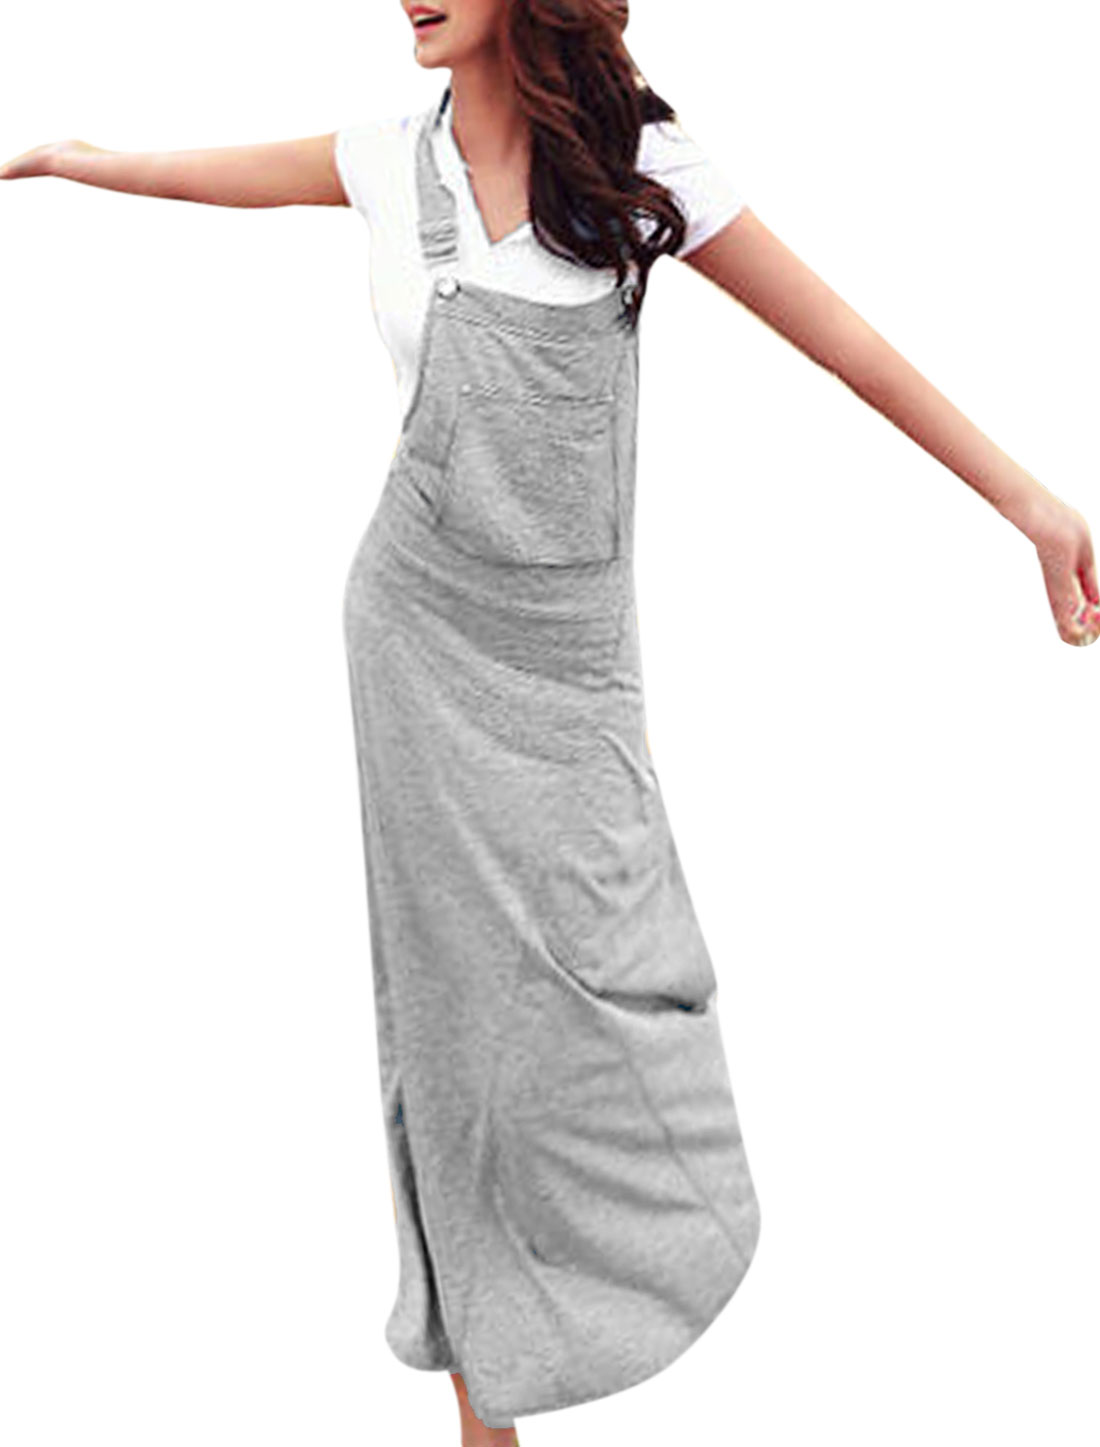 Women Full-Length Sleeveless Hooded Overall Dress Gray XS